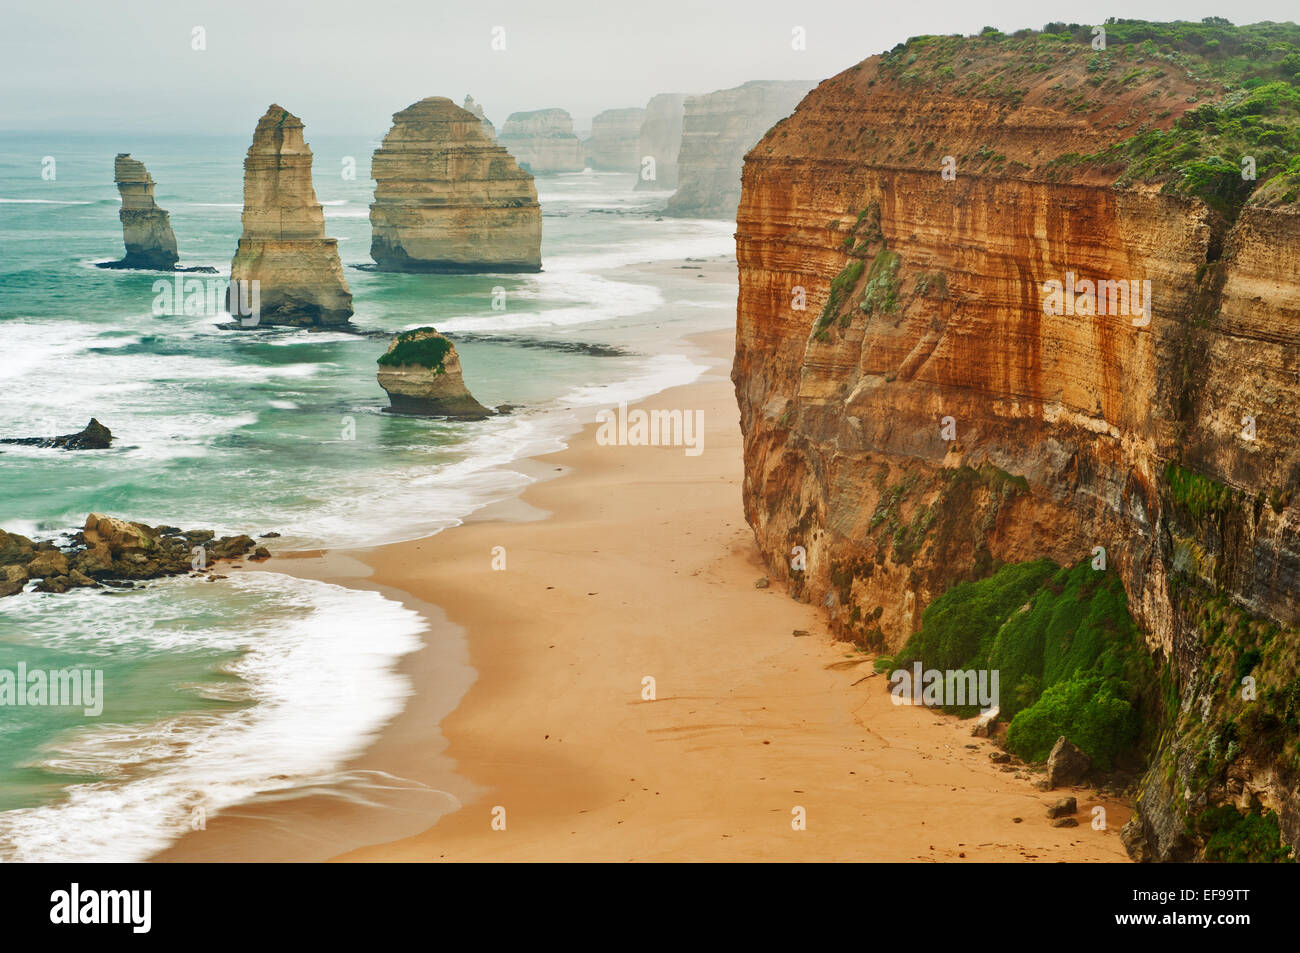 Rock formation of the Twelve Apostles. - Stock Image